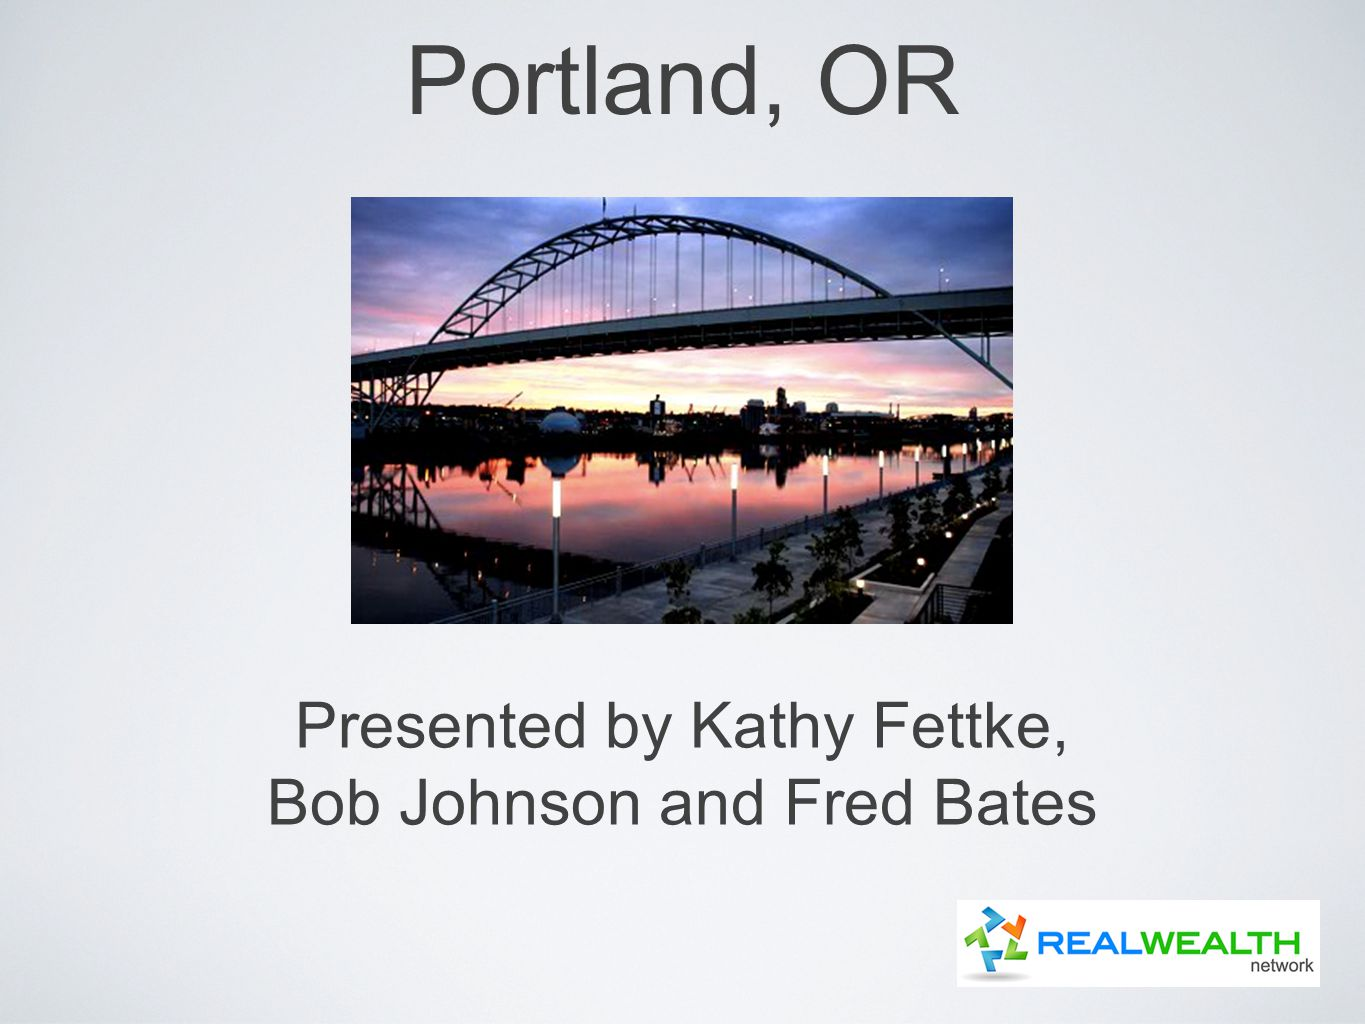 Portland, OR Presented by Kathy Fettke, Bob Johnson and Fred Bates